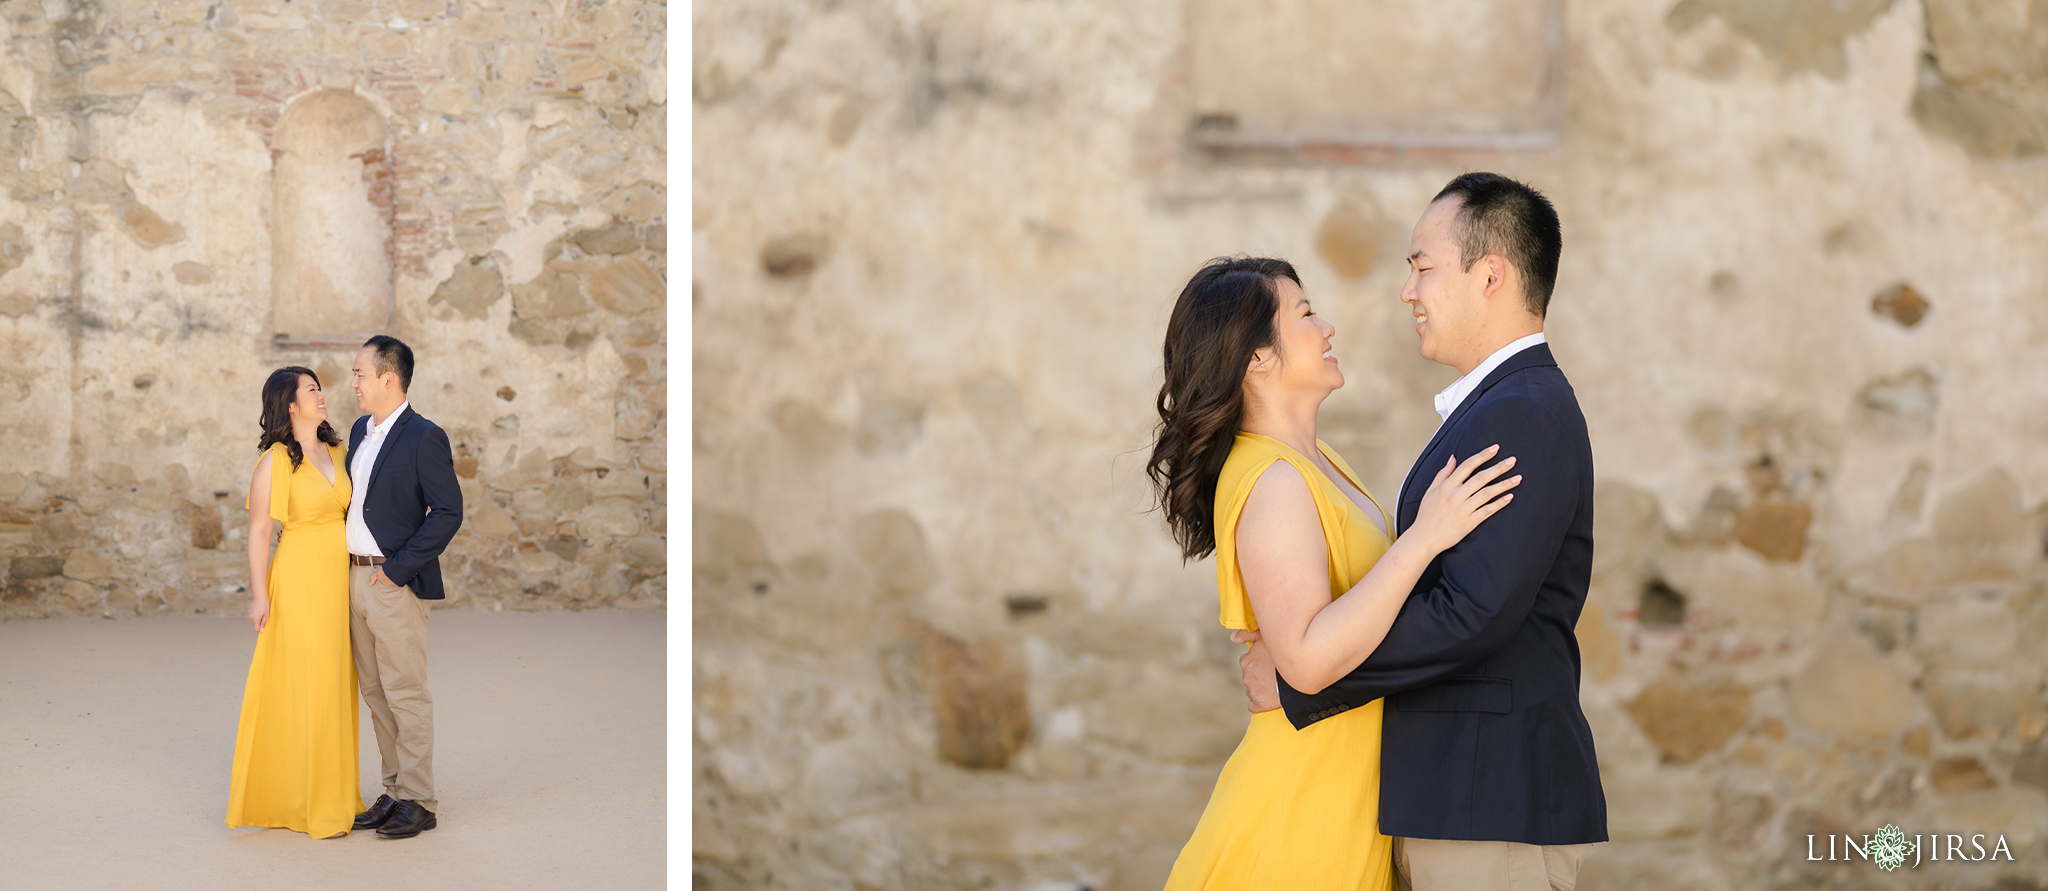 znc Mission San Juan Capistrano Engagement Photography